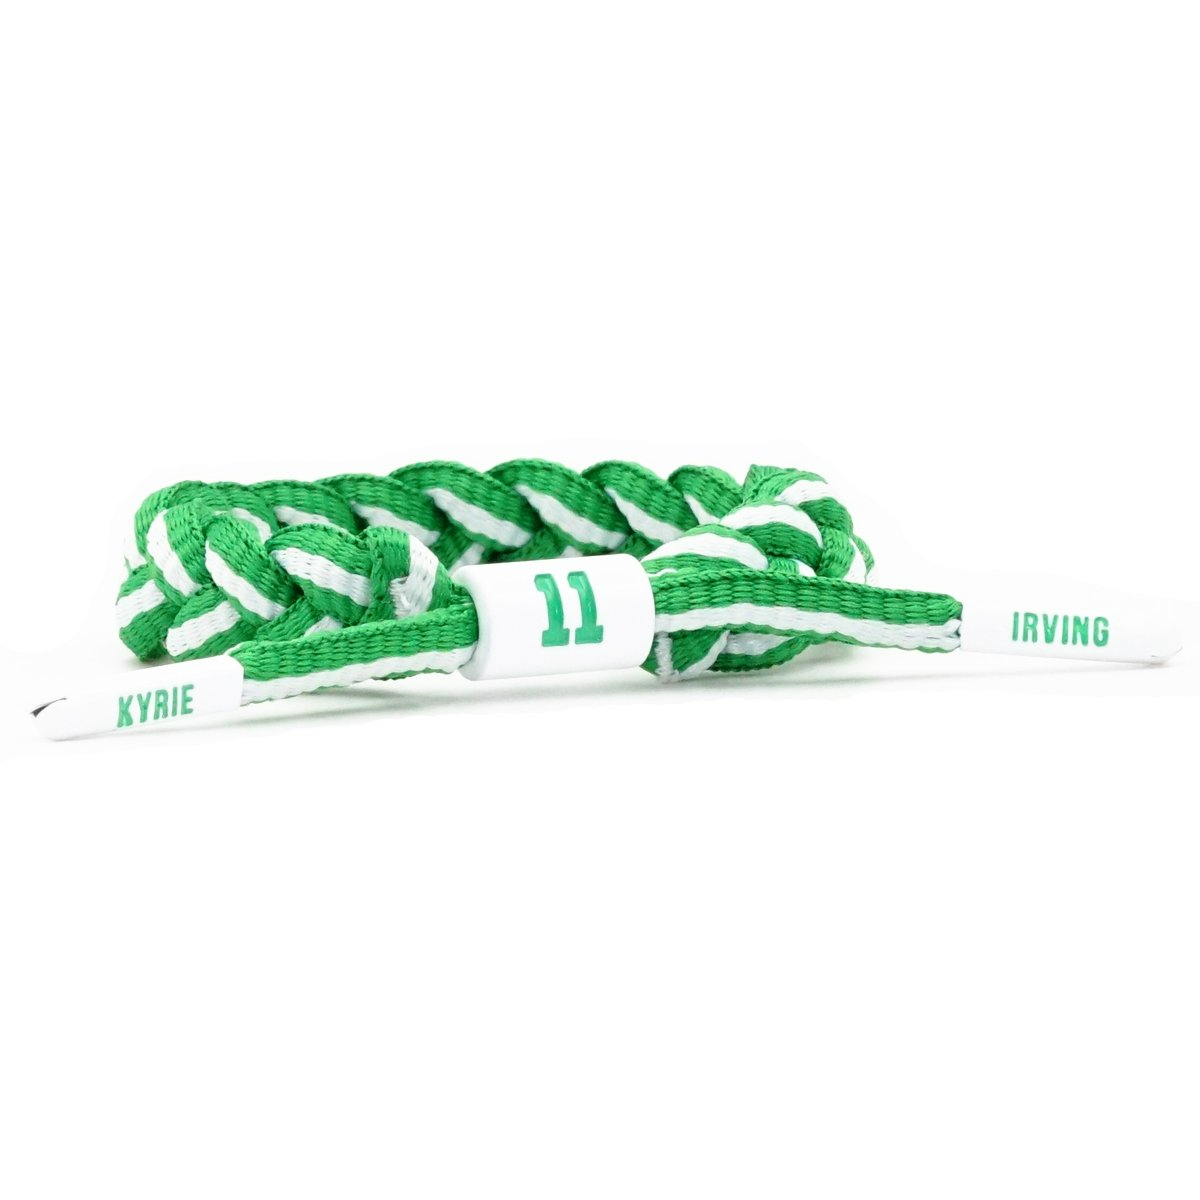 MLFuture Basketball Bracelet Wristband hand knitted adjustable bracelet NBA Player Collection Uncle Drew Irving